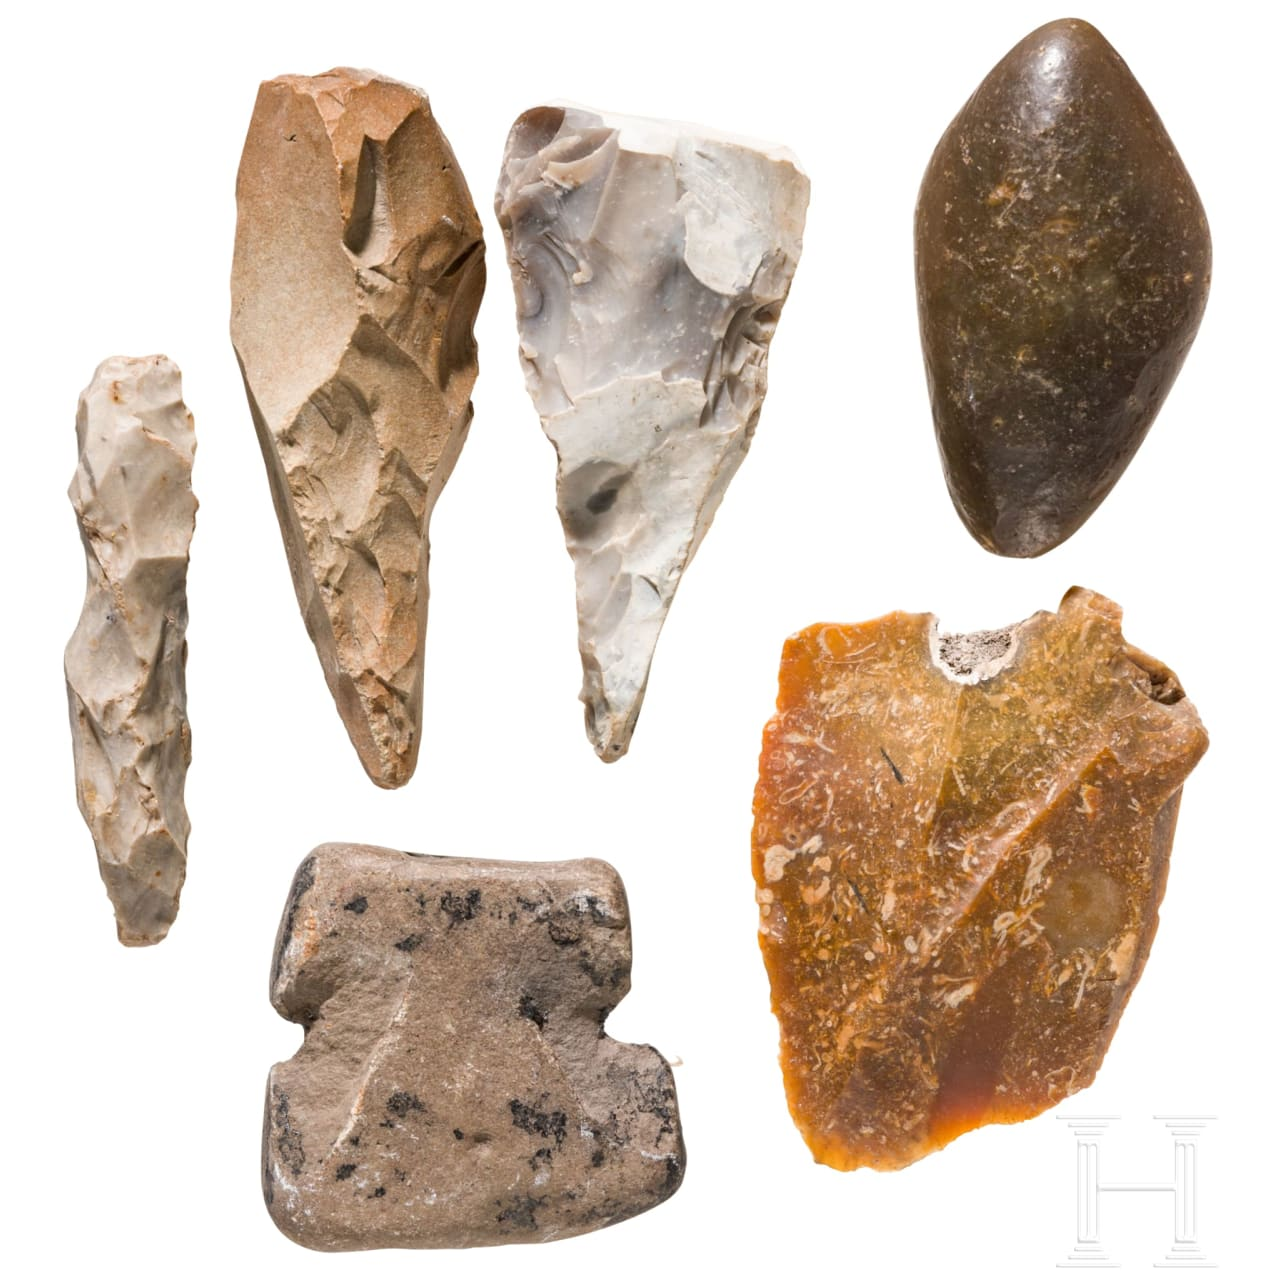 Six Central European Paleolithic stone tools